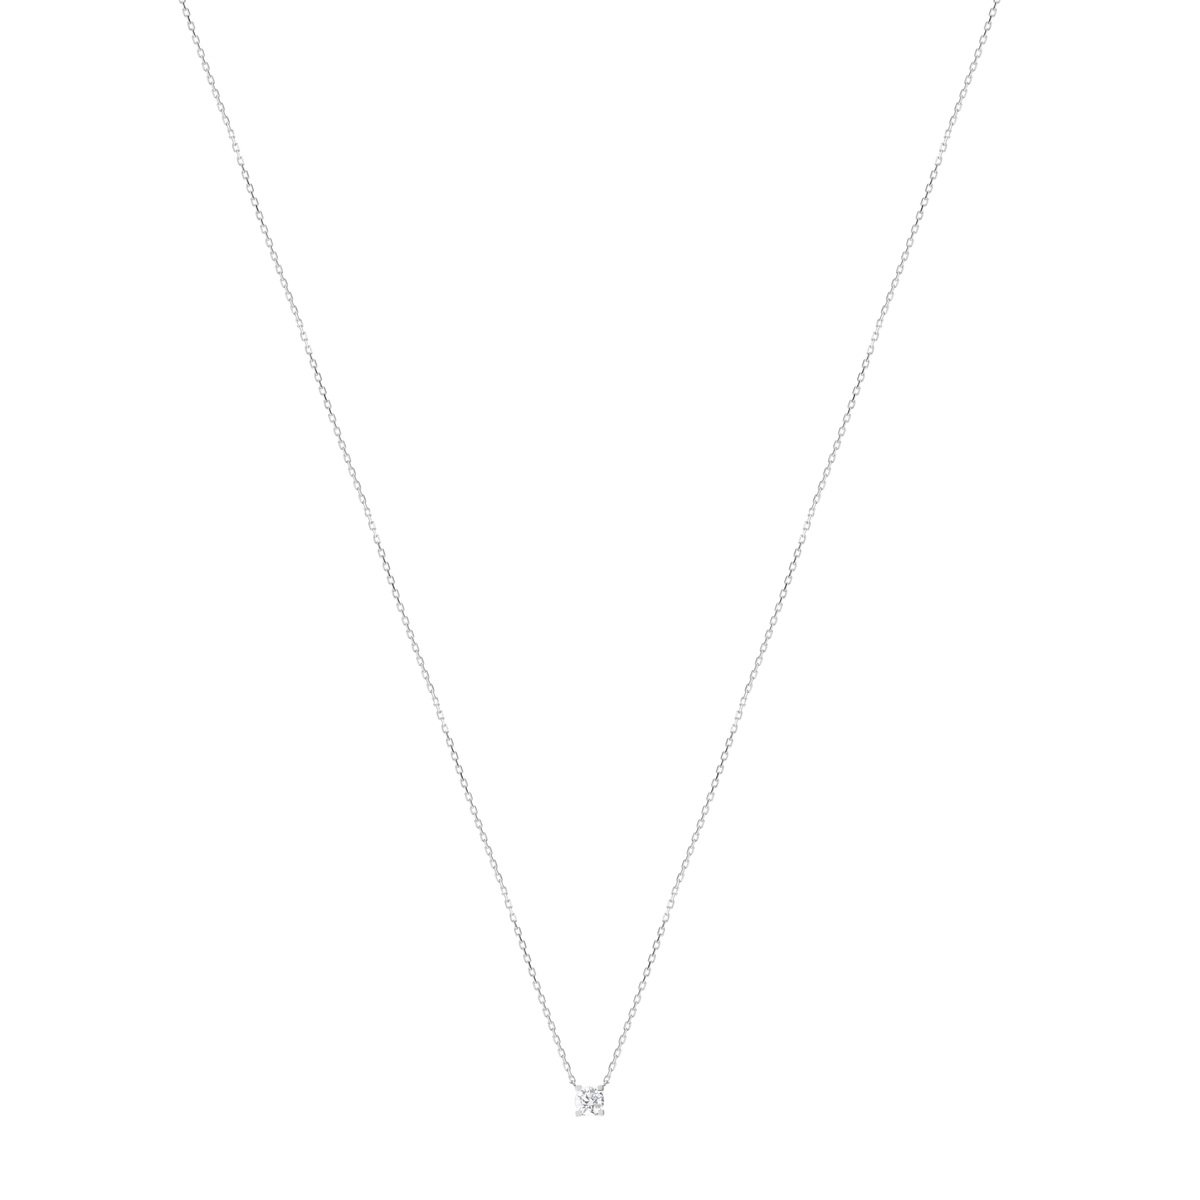 Collier or 750 blanc diamant synthétique - vue V1